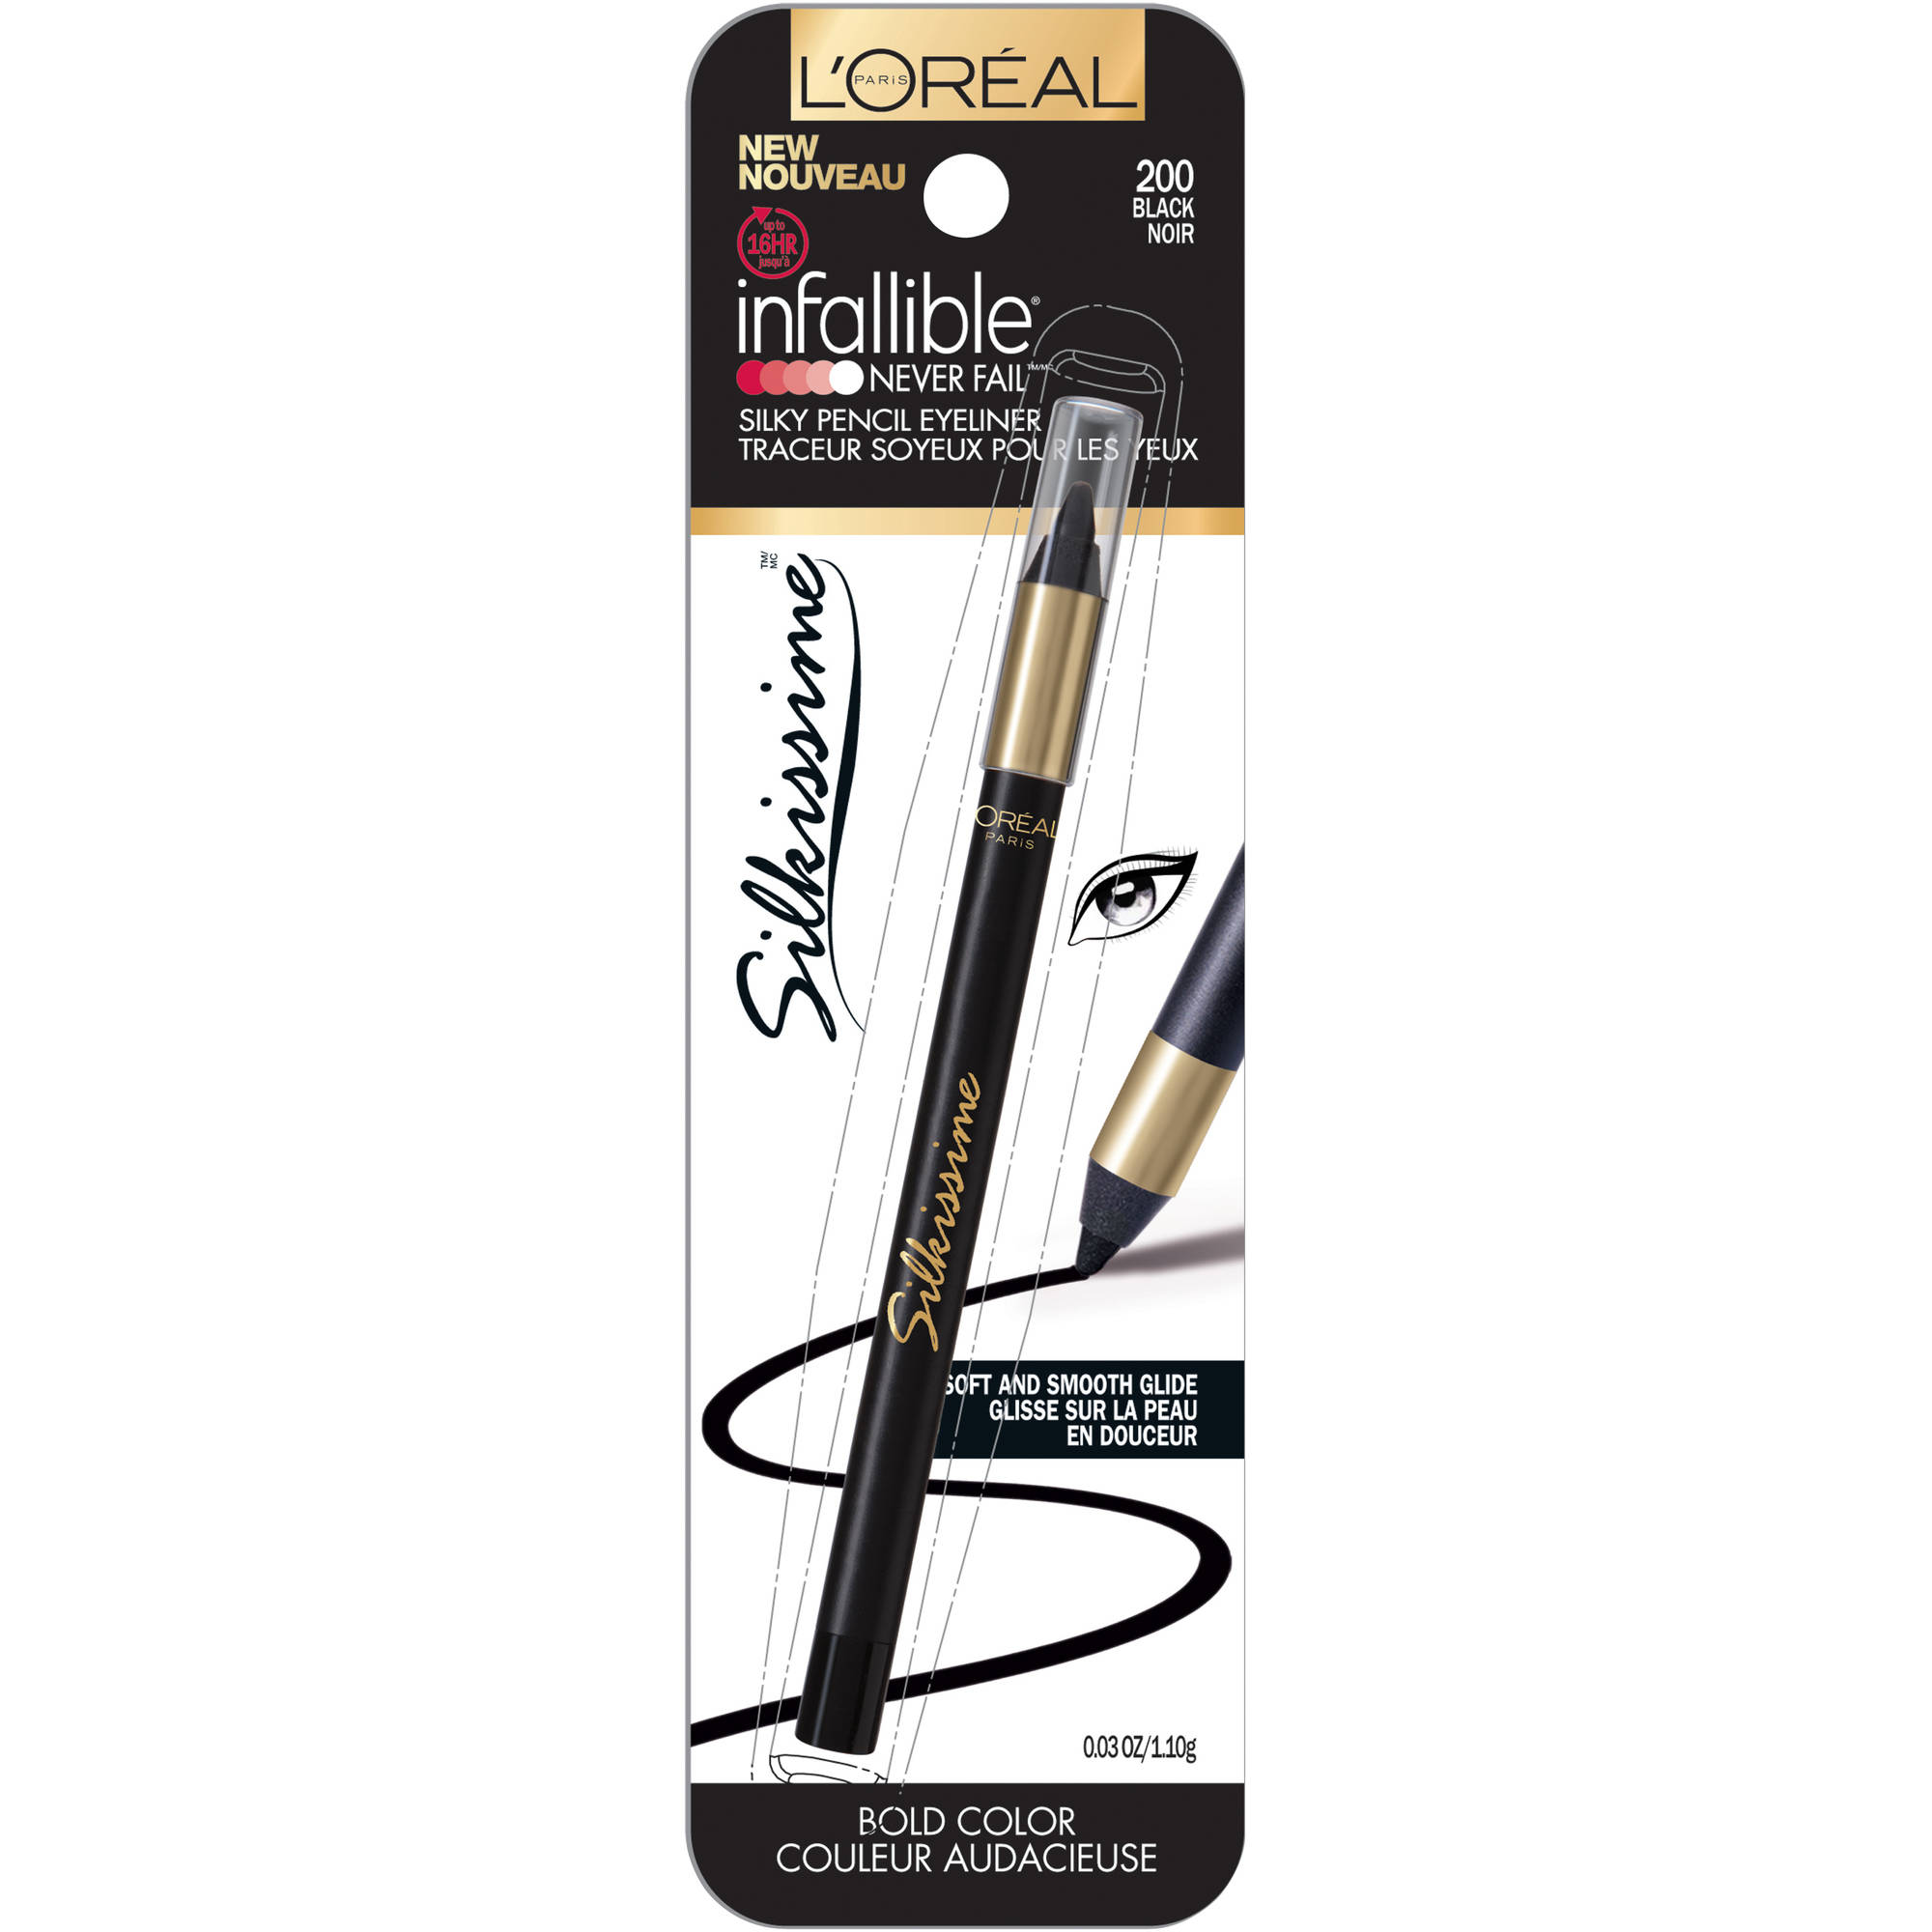 L'Oréal Paris Infallible Eye Silkissime Eyeliner, Black, 0.03 Oz (Packaging May Vary)